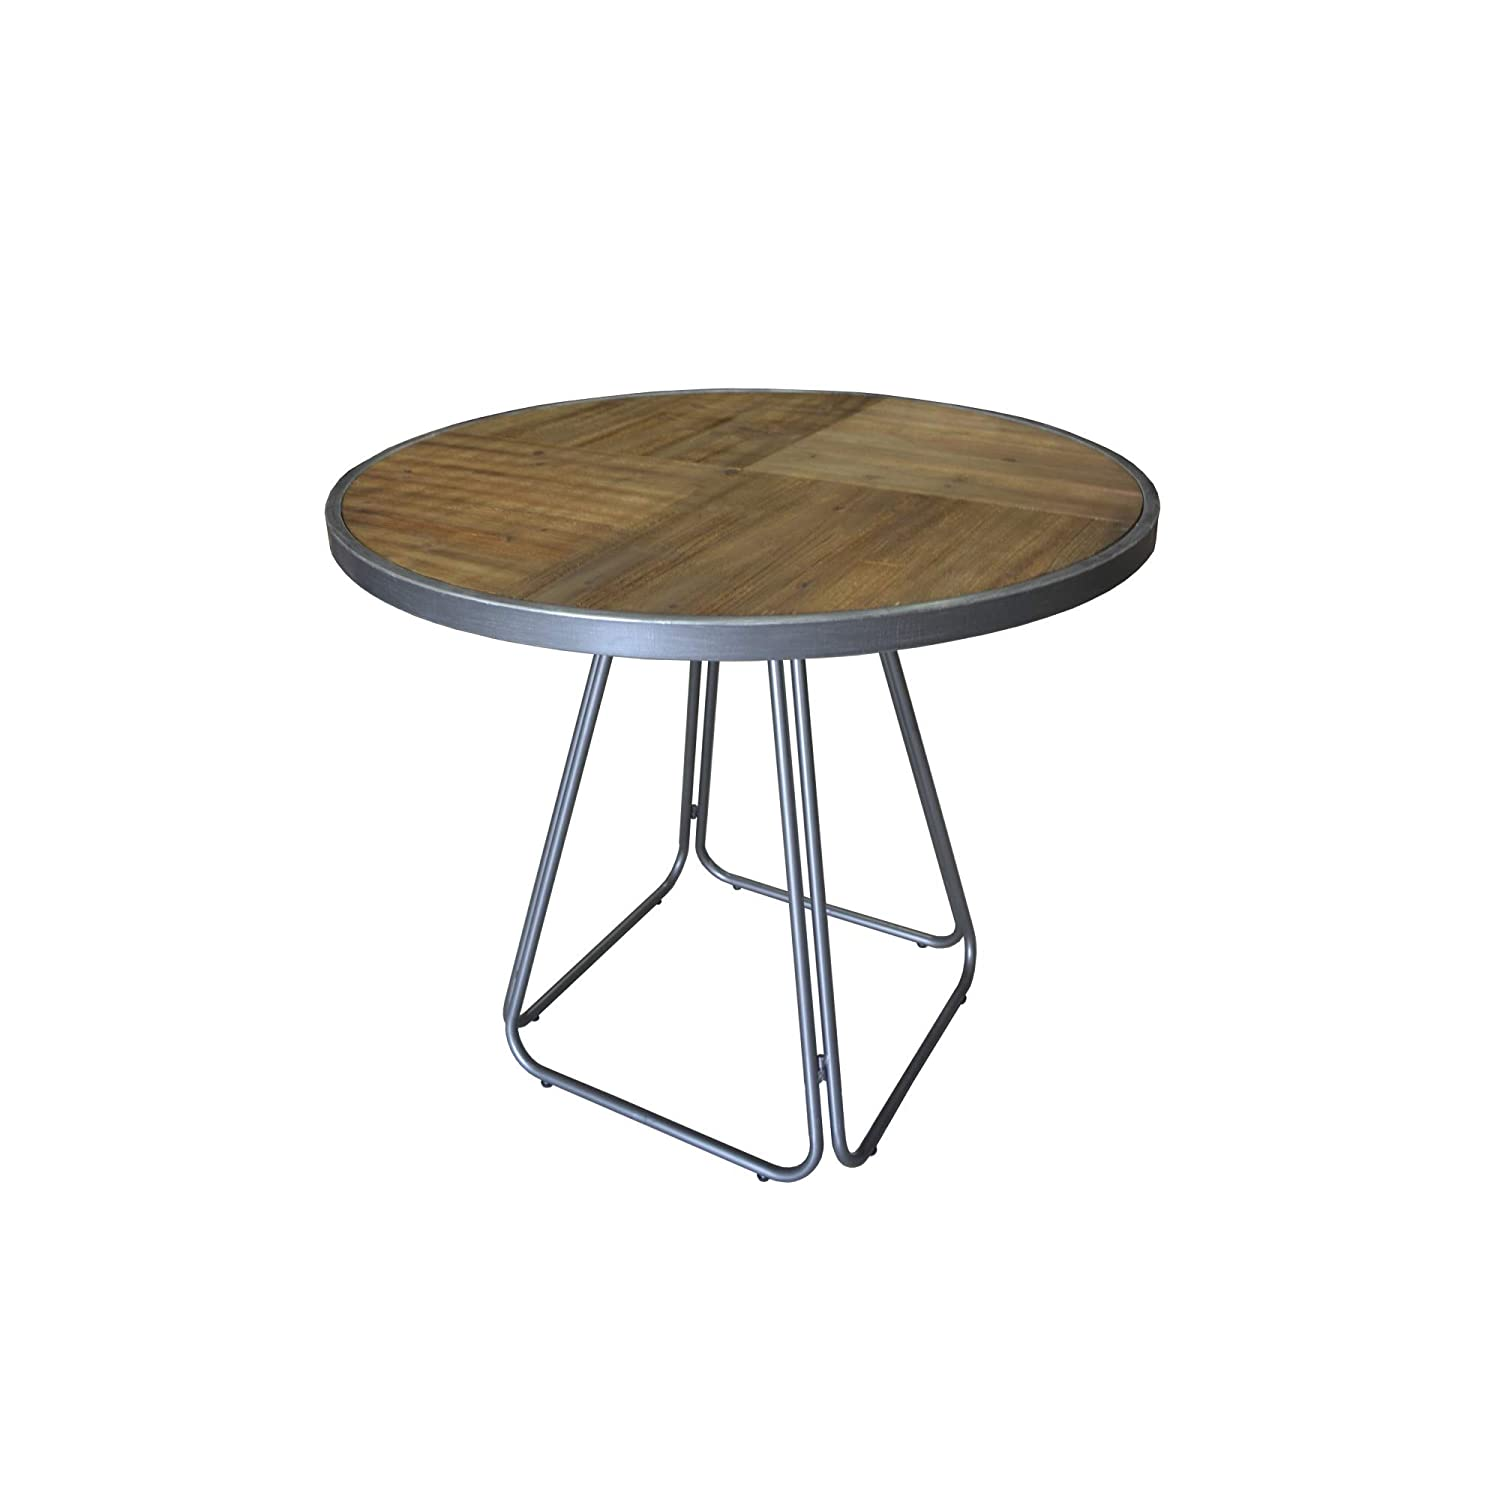 Herrera Round Gathering Height Dining Table in Rustic Fir with Shaped Tubular Steel Frame And Solid, Pieced Wood Top, by Artum Hill